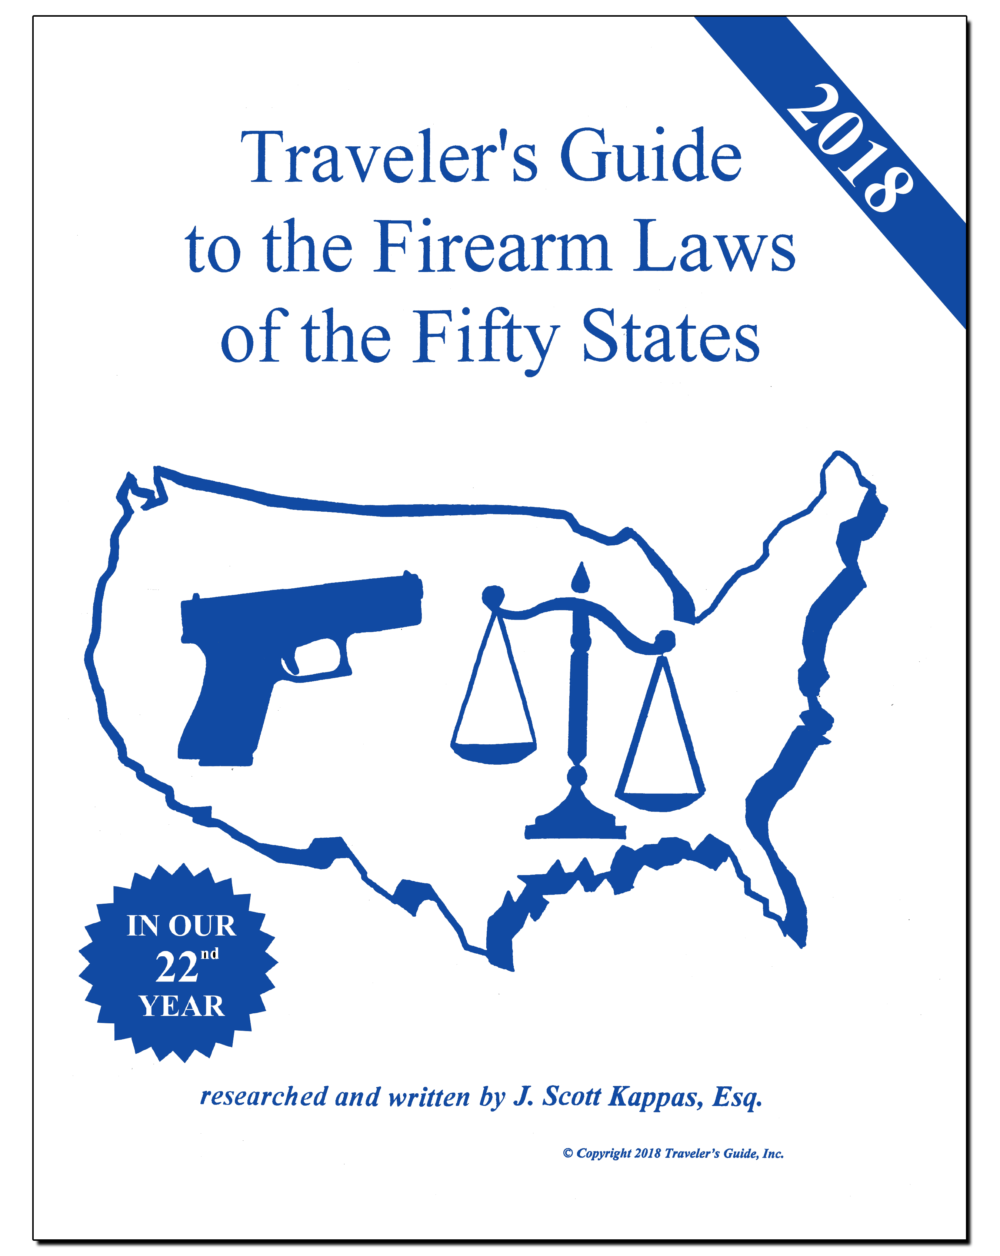 Travelers guide to the firearm laws of the fifty states gun laws over 1000000 books sold since 1996 fandeluxe Choice Image